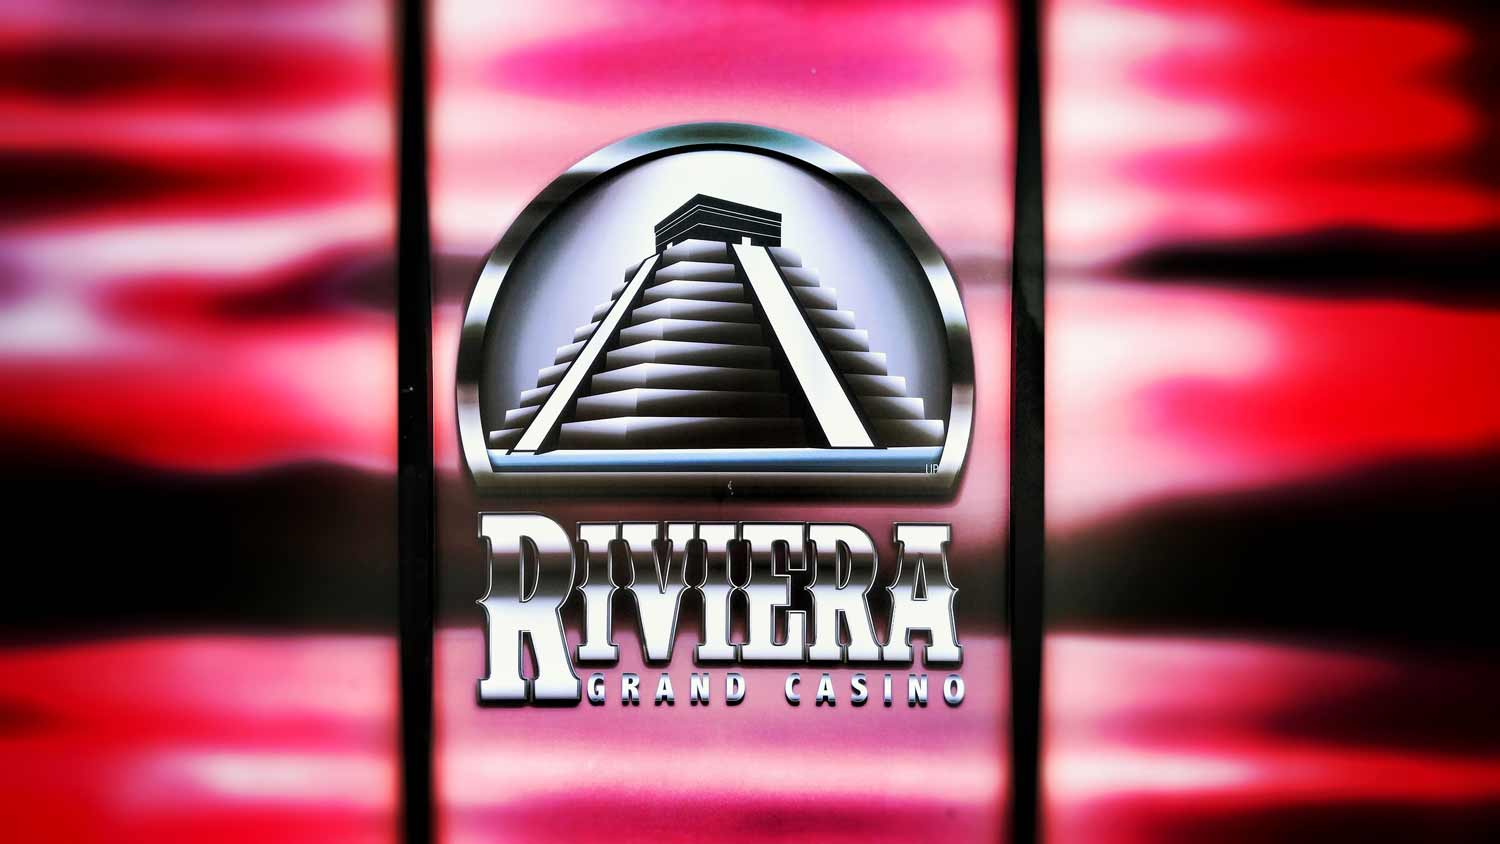 The Riviera Grand Casino logo on the side of the wall outside the entrance.